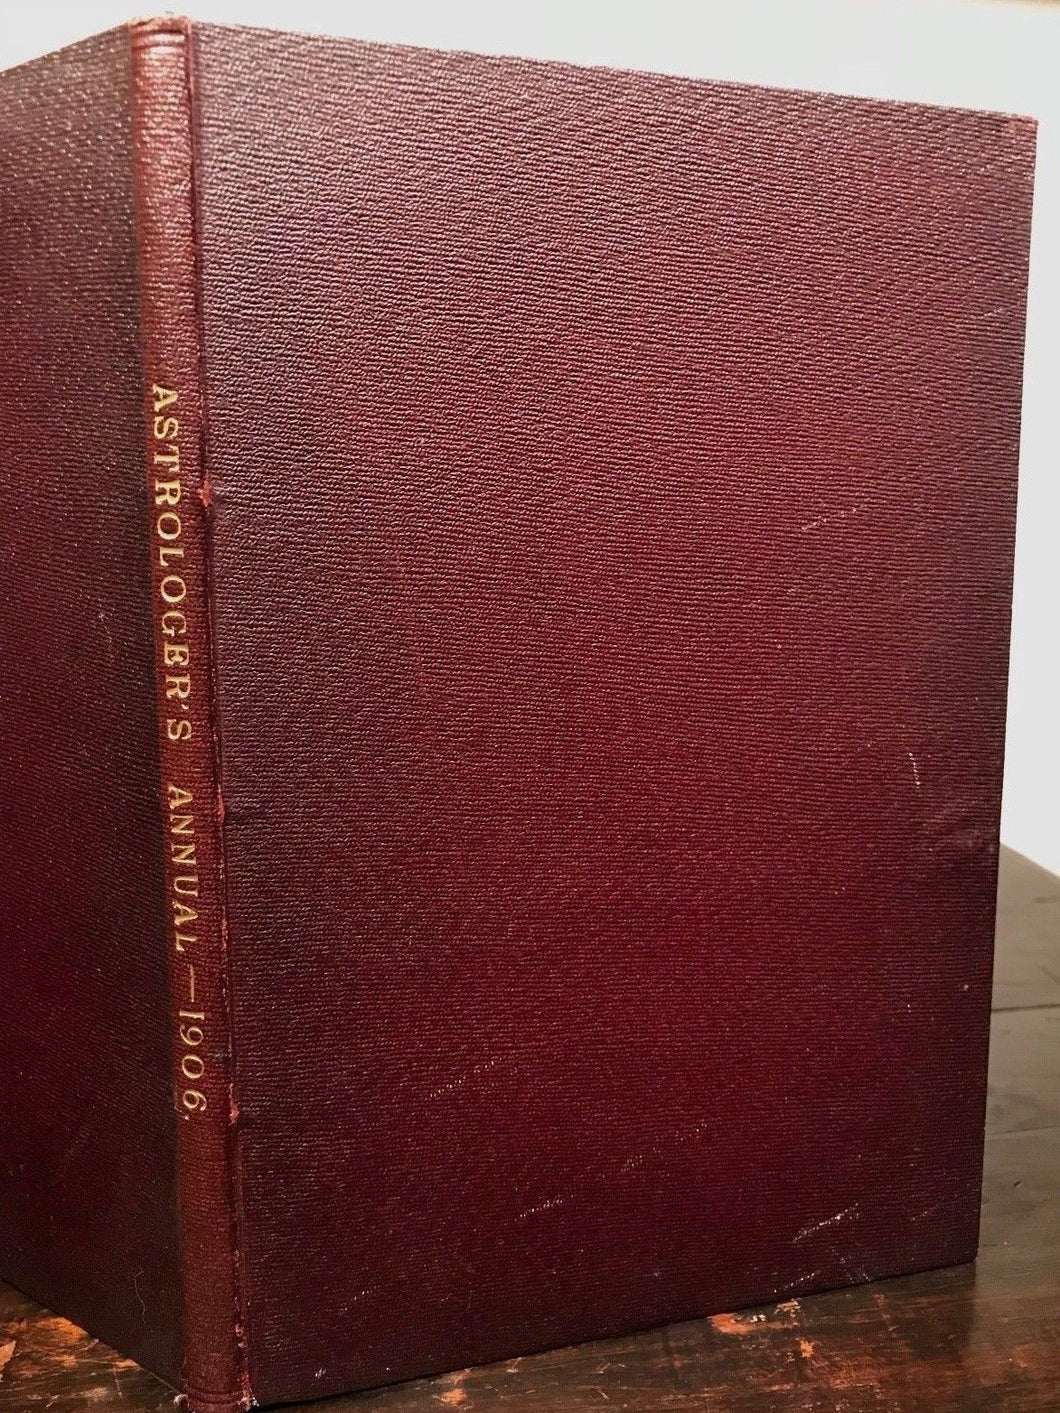 THE ASTROLOGER'S ANNUAL - Very SCARCE 1st Ed, 1906 - Alan Leo - ASTROLOGY OCCULT